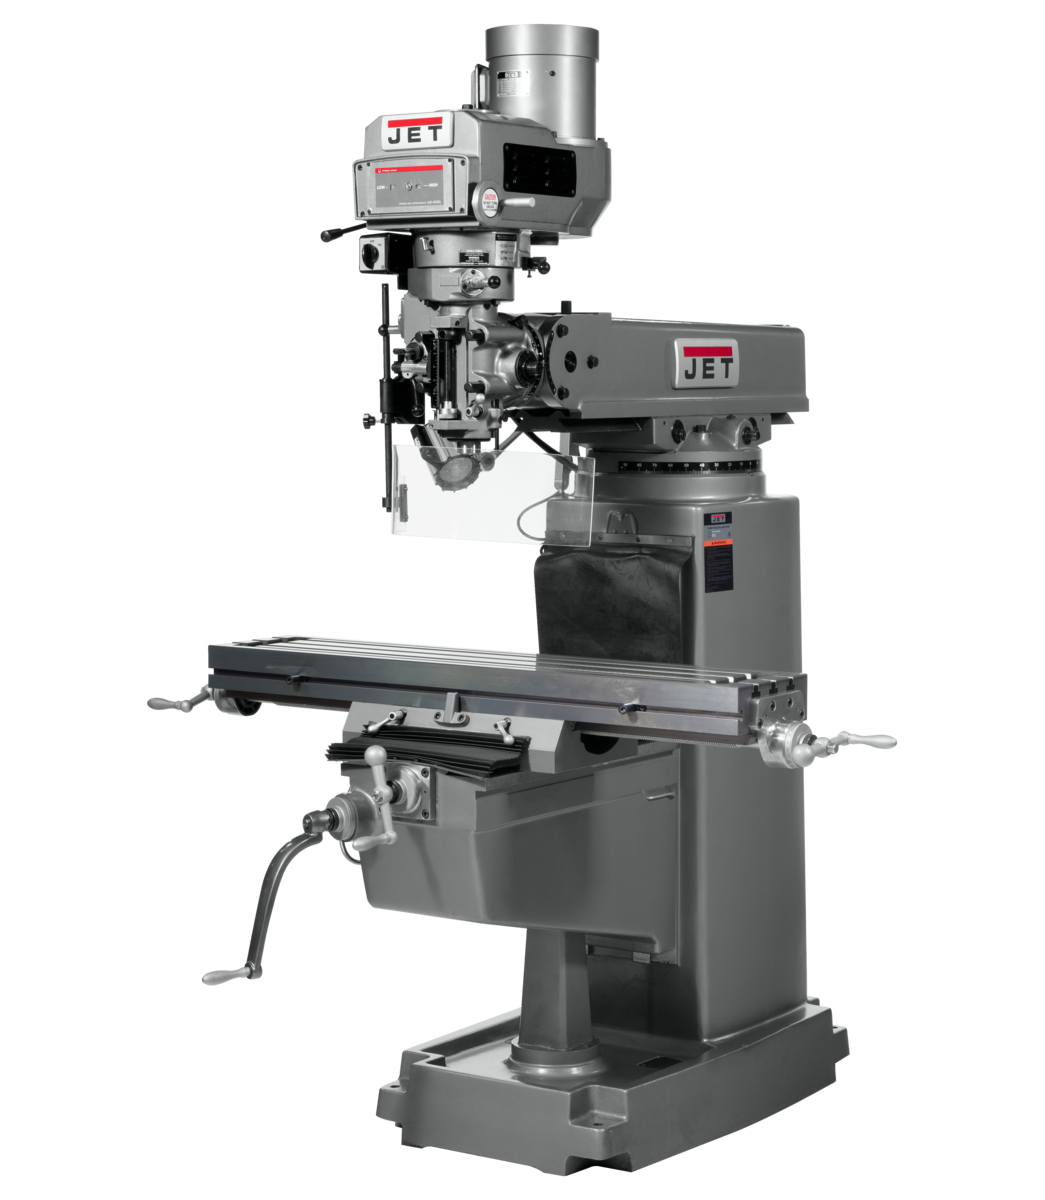 JTM-1050VS2 Mill With 3-Axis ACU-RITE 203 DRO (Quill) With X, Y and Z-Axis Powerfeeds